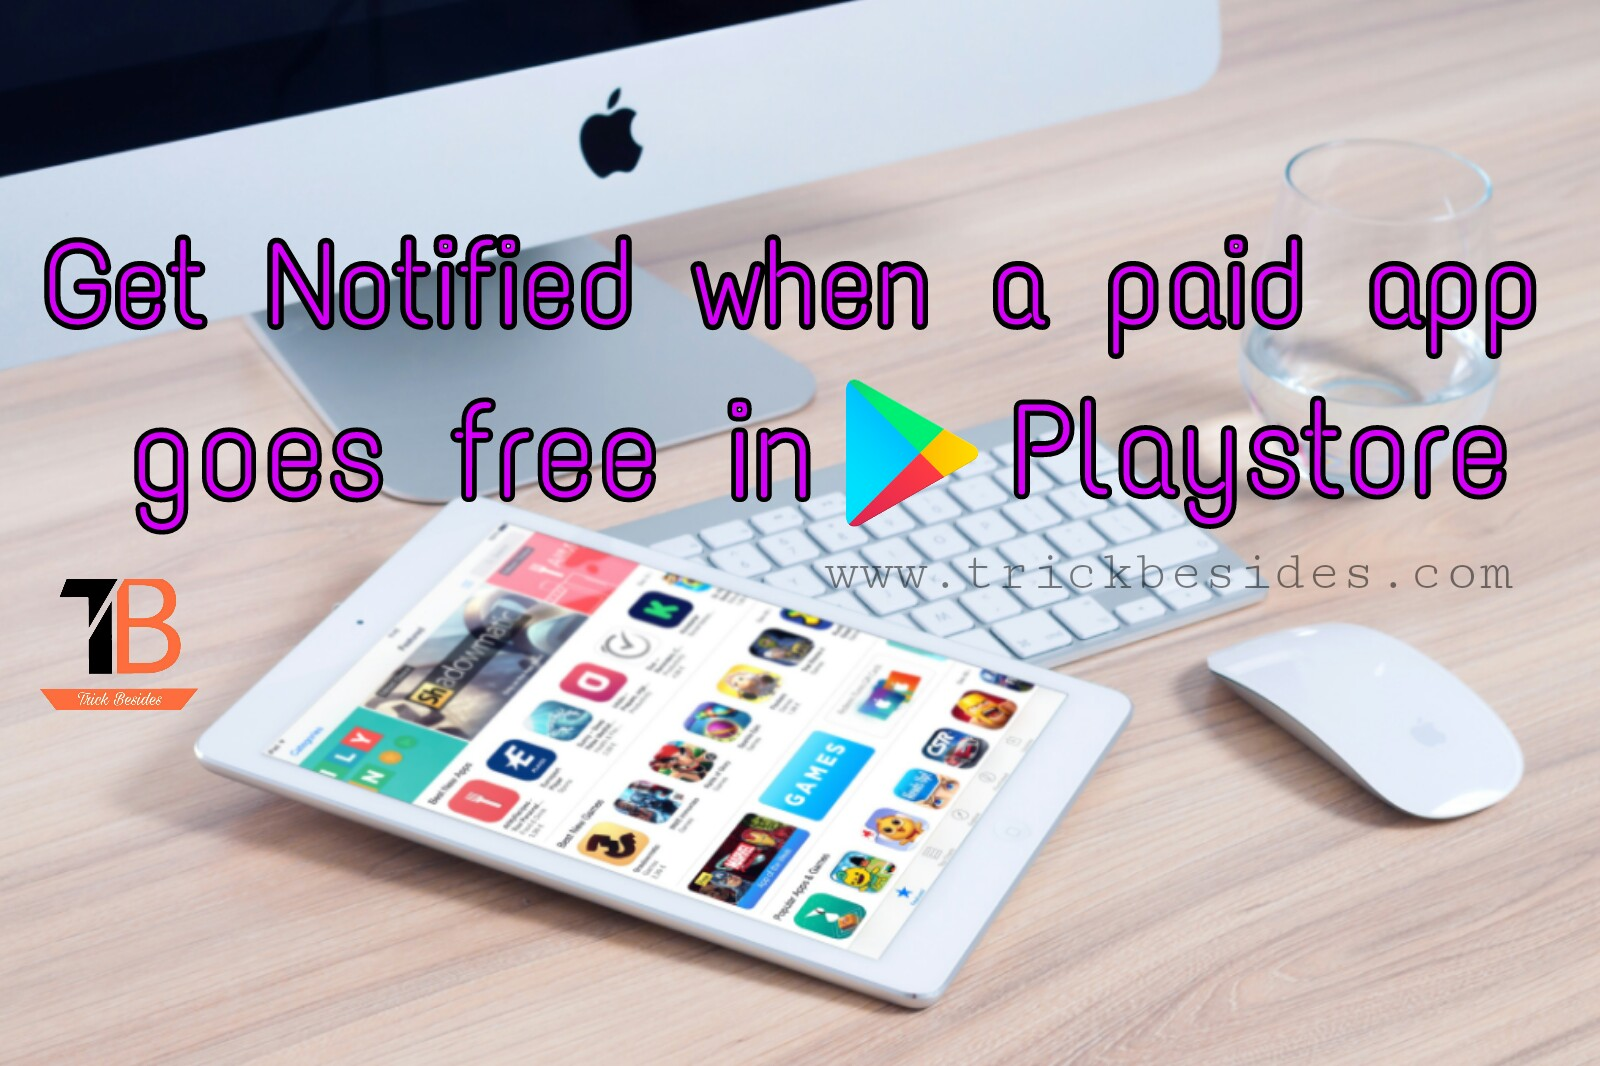 Get Notified when a paid app goes free in Google Playstore